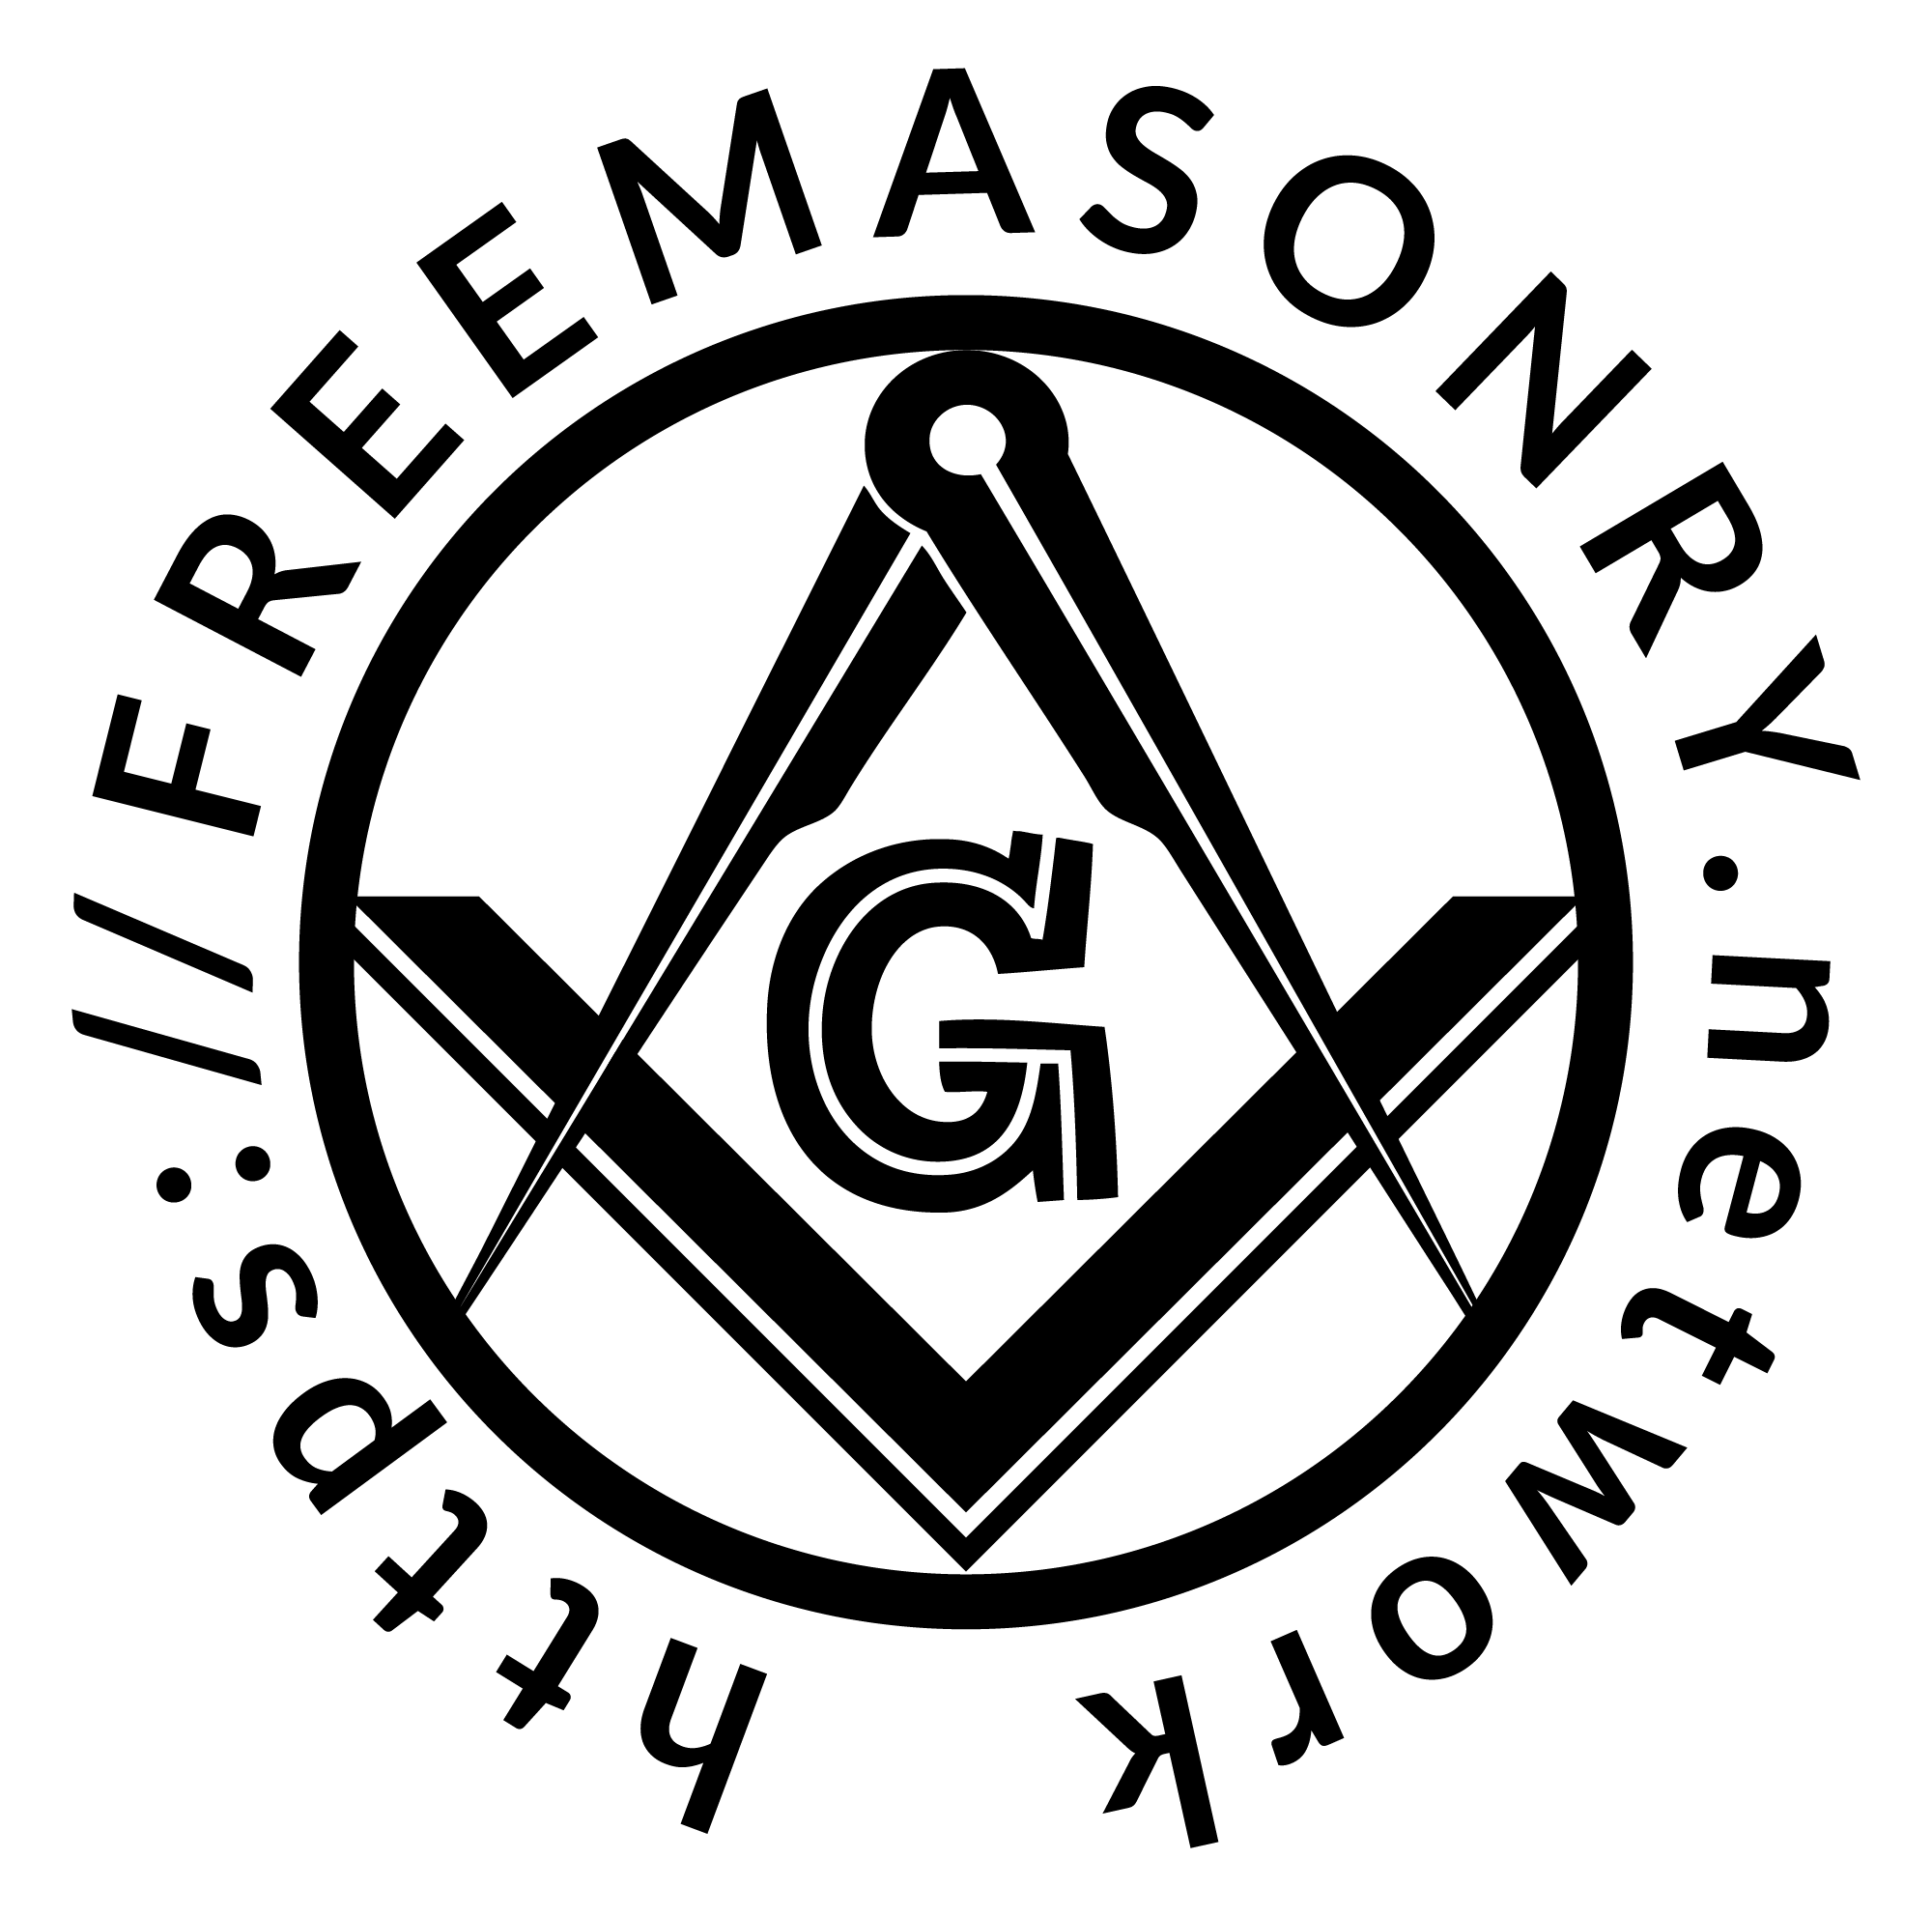 MASONIC RATIONALISM